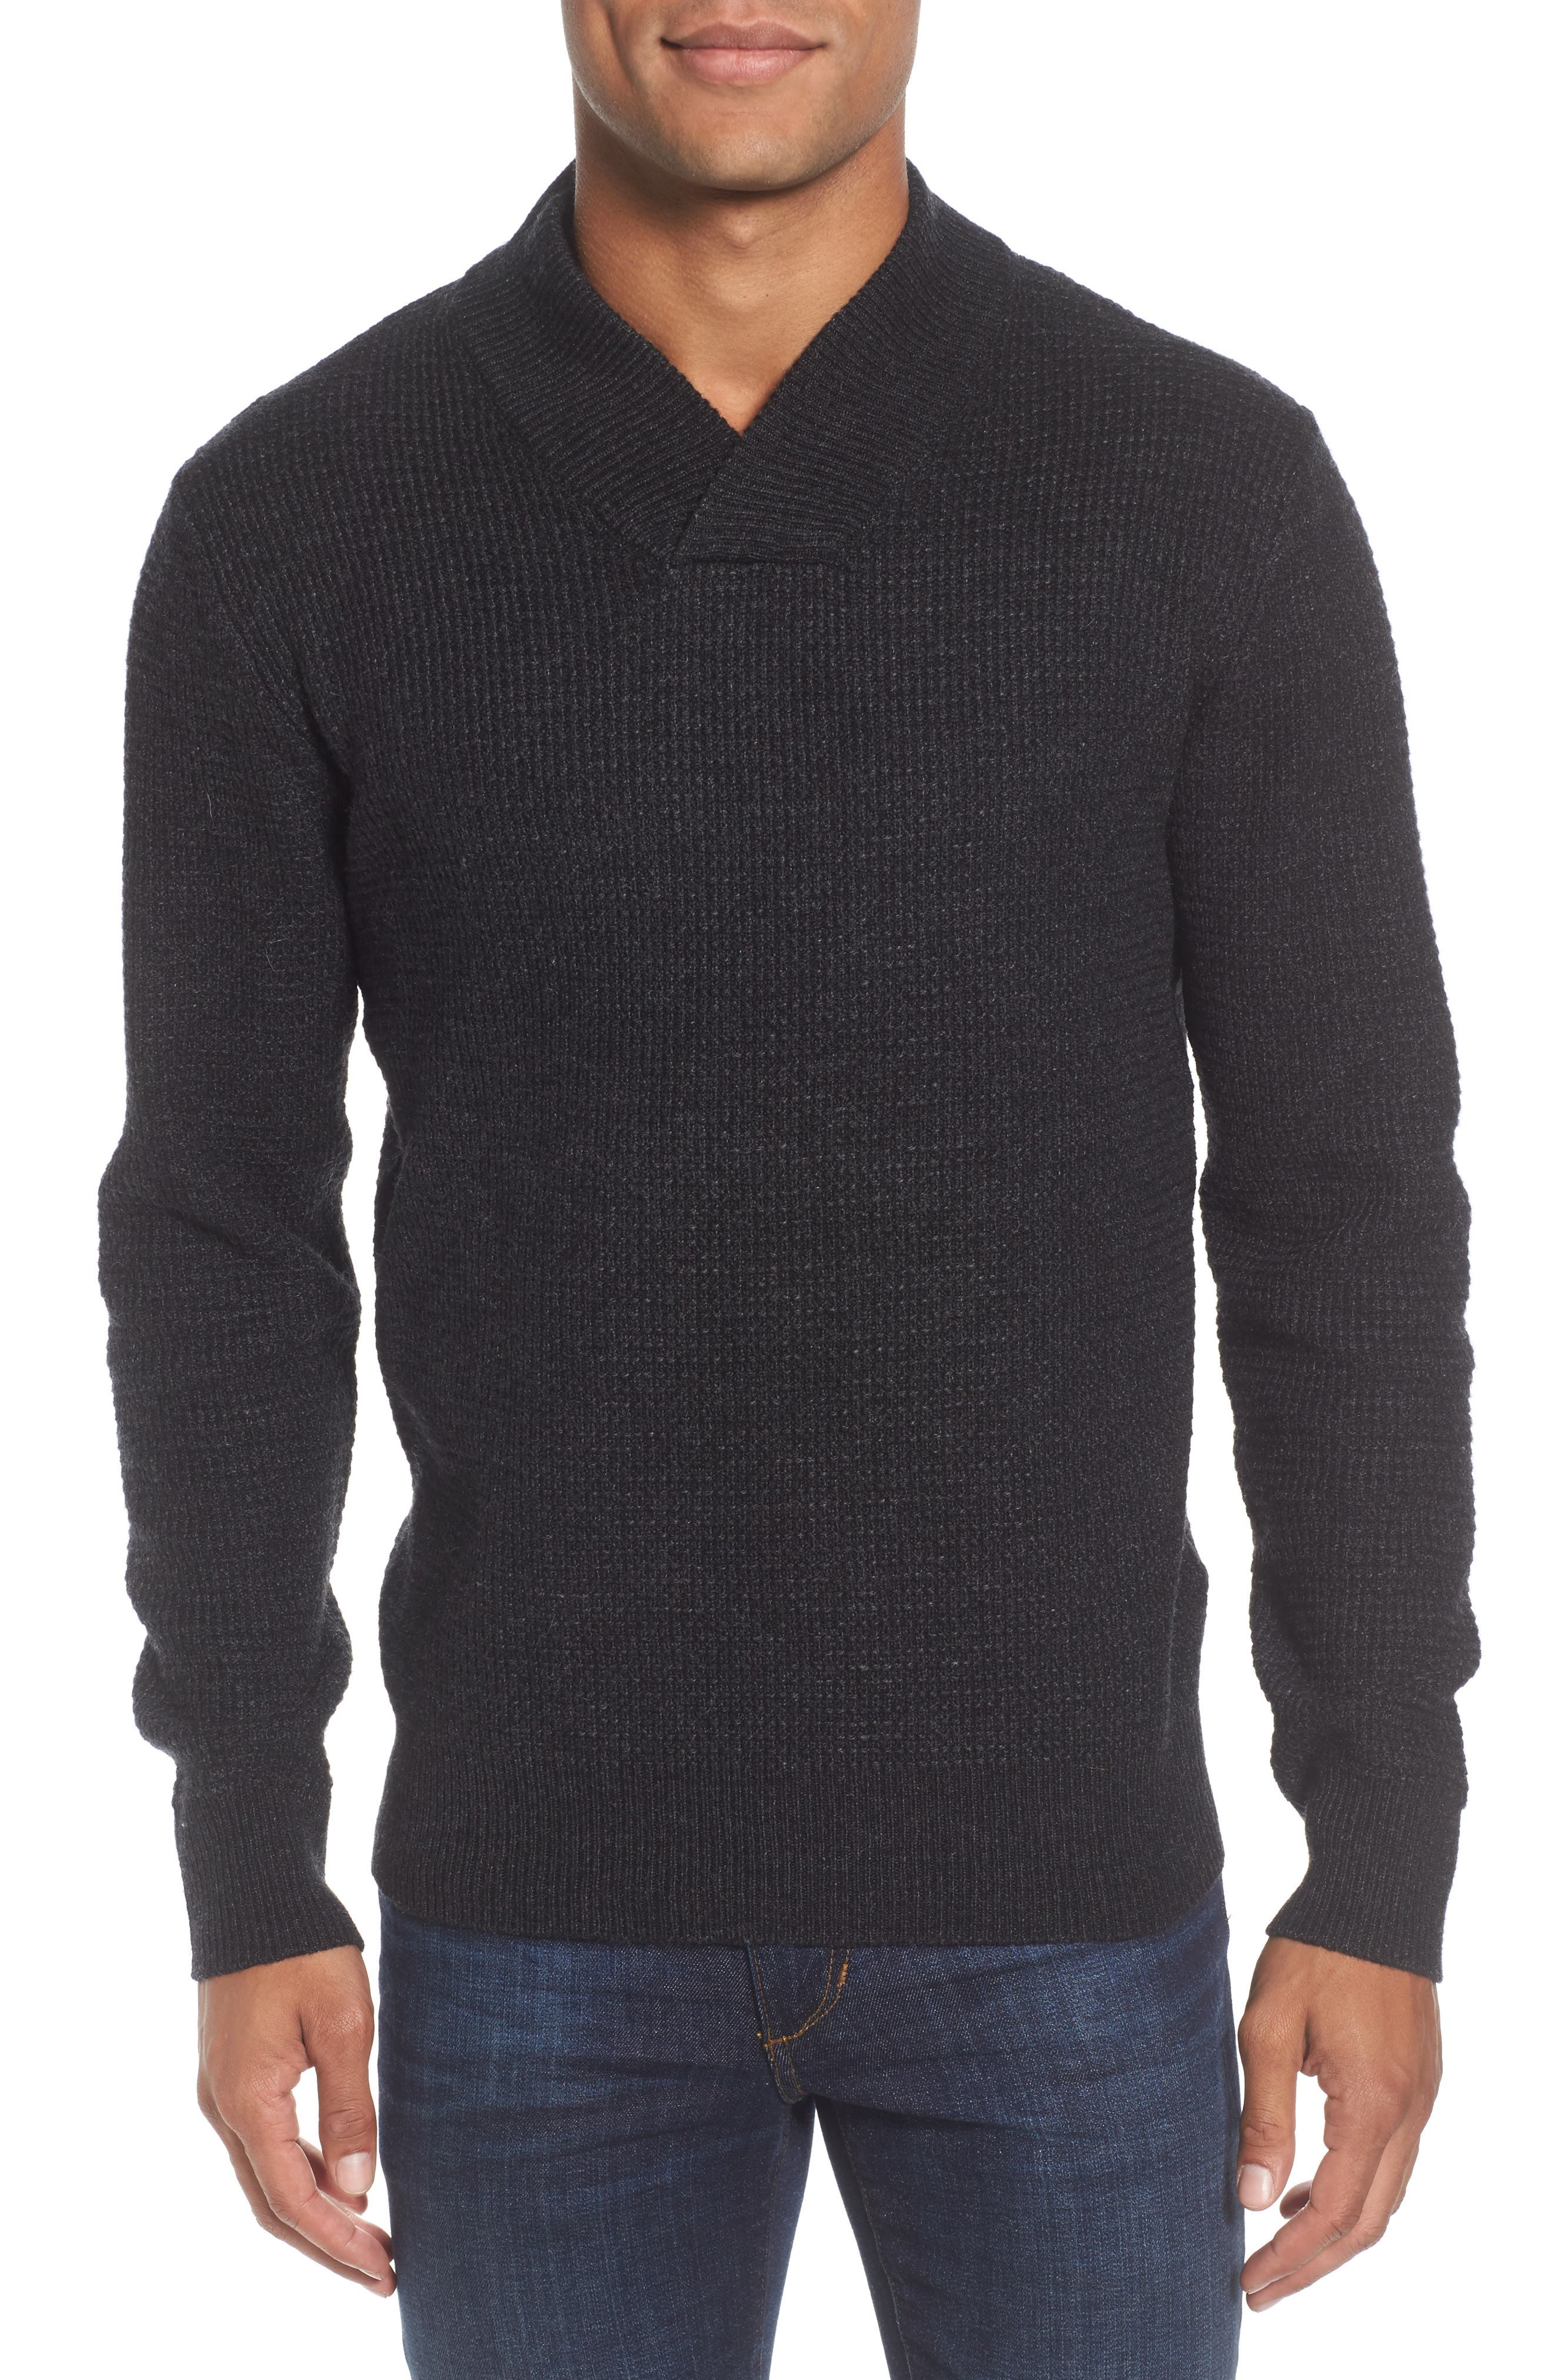 Waffle Knit Thermal Wool Blend Pullover,                             Main thumbnail 1, color,                             BLACK